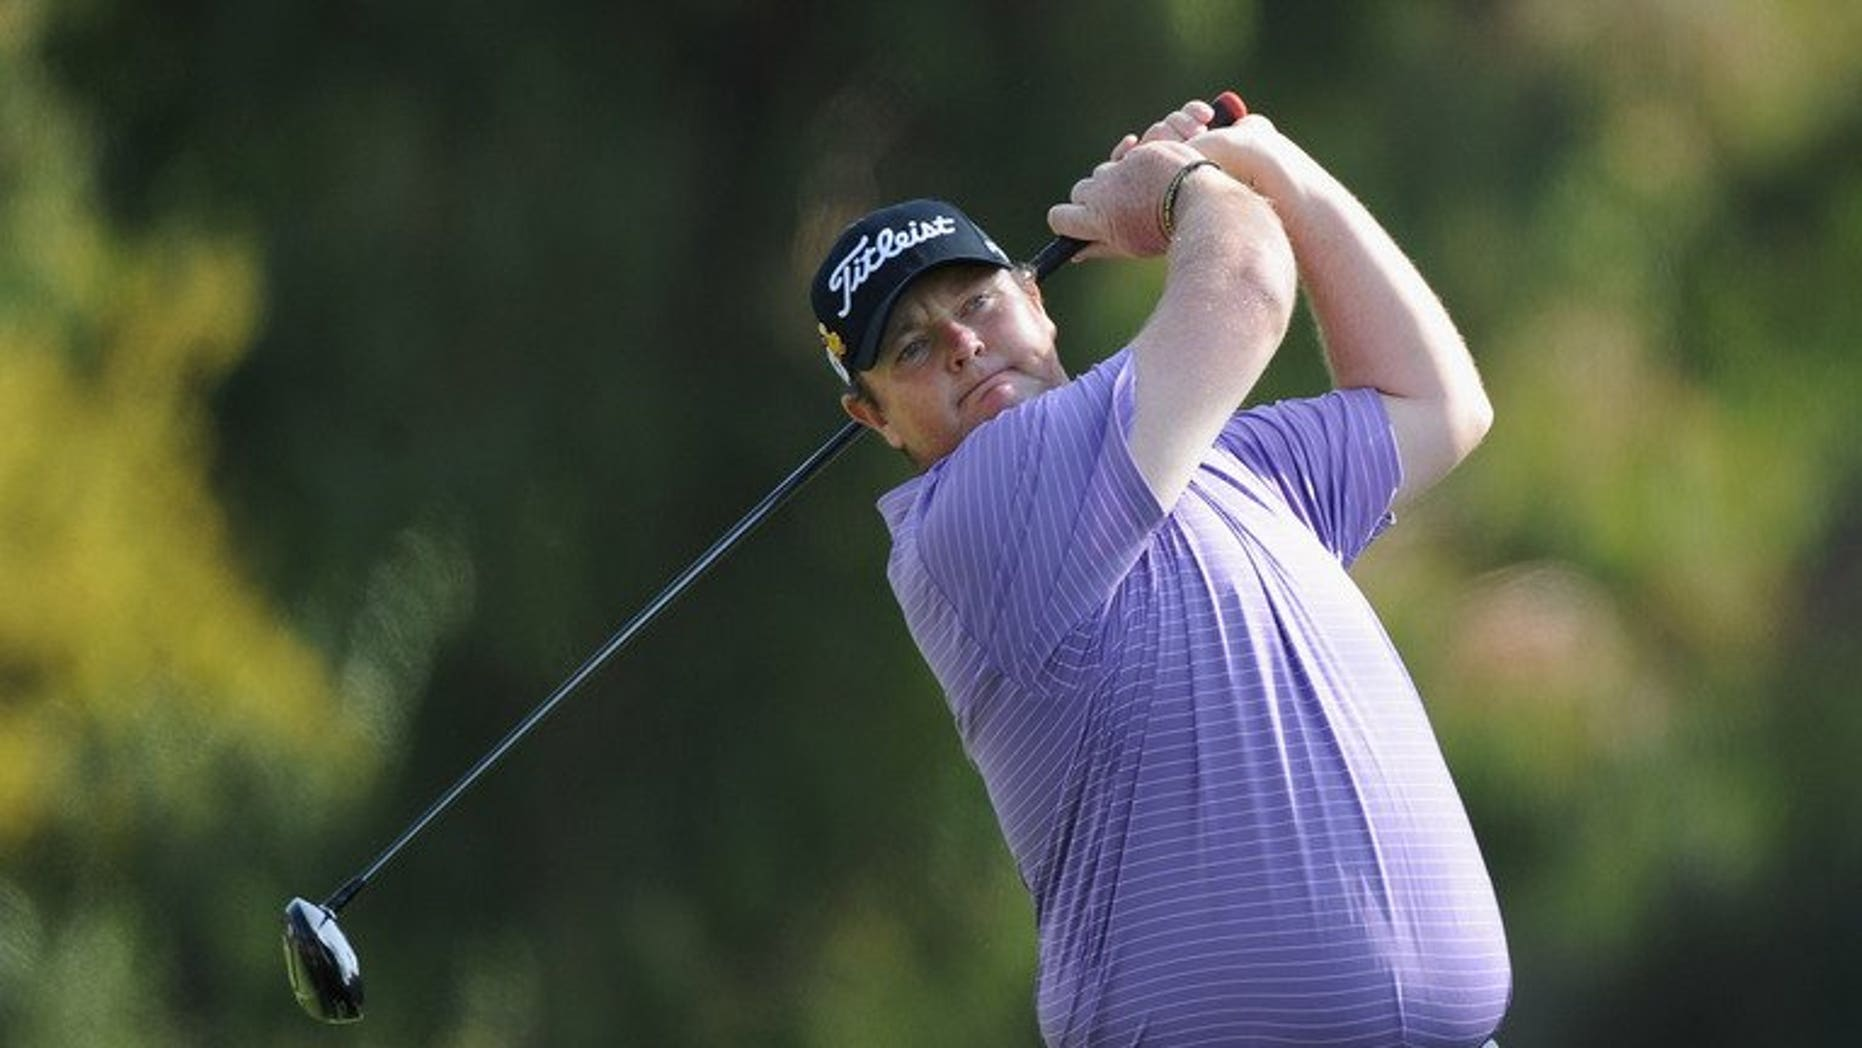 Australia's Jarrod Lyle pictured during the Northern Trust Open in Pacific Palisades, California on February 19, 2012. He will make a return to professional golf at the Australian Masters in November after an 18-month battle with cancer, organisers said Wednesday.